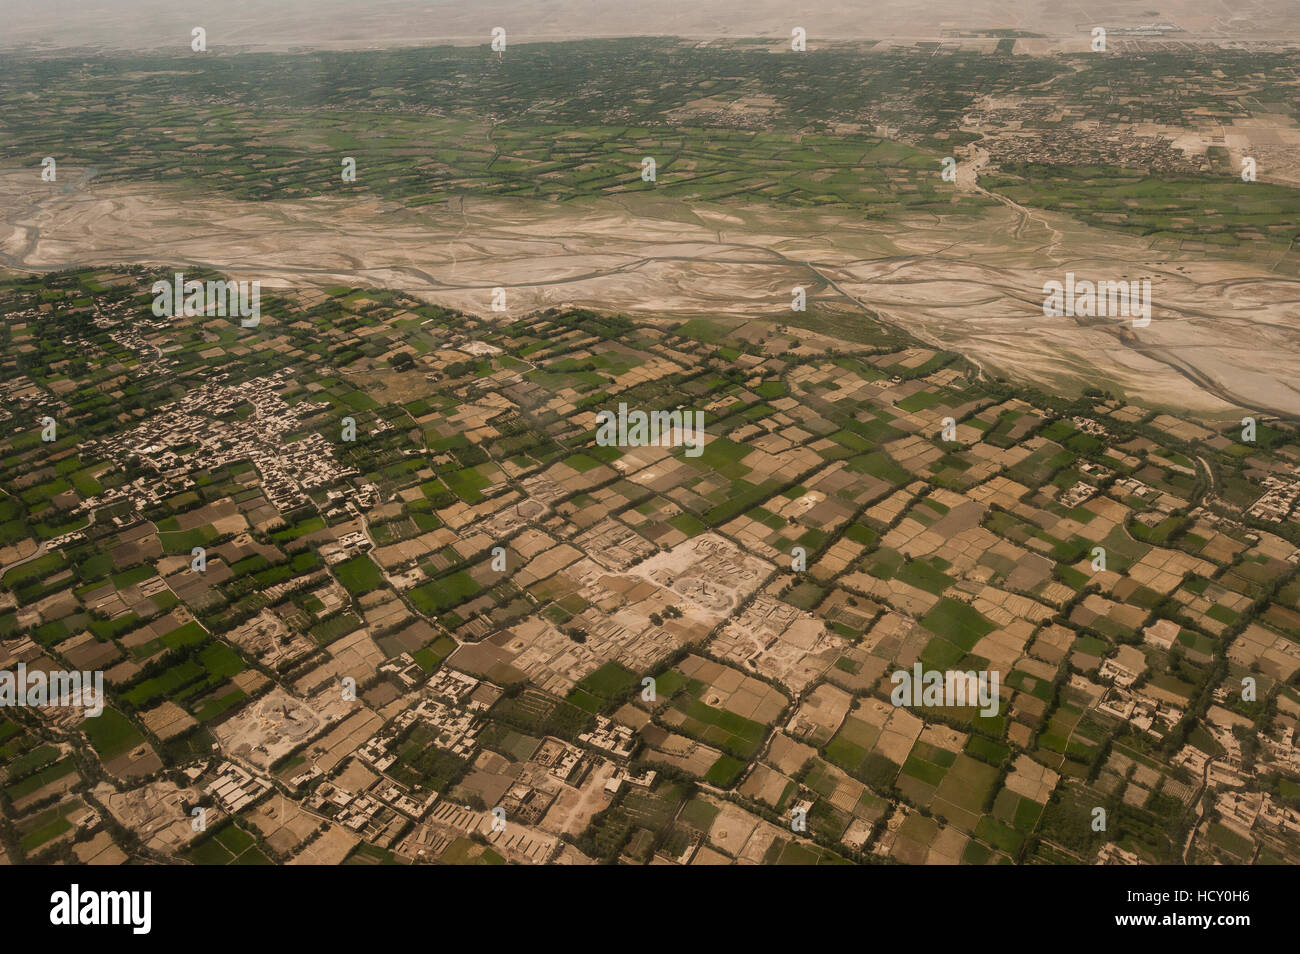 Afghanistan landscape from the Herat-Kabul flight, Afghanistan - Stock Image